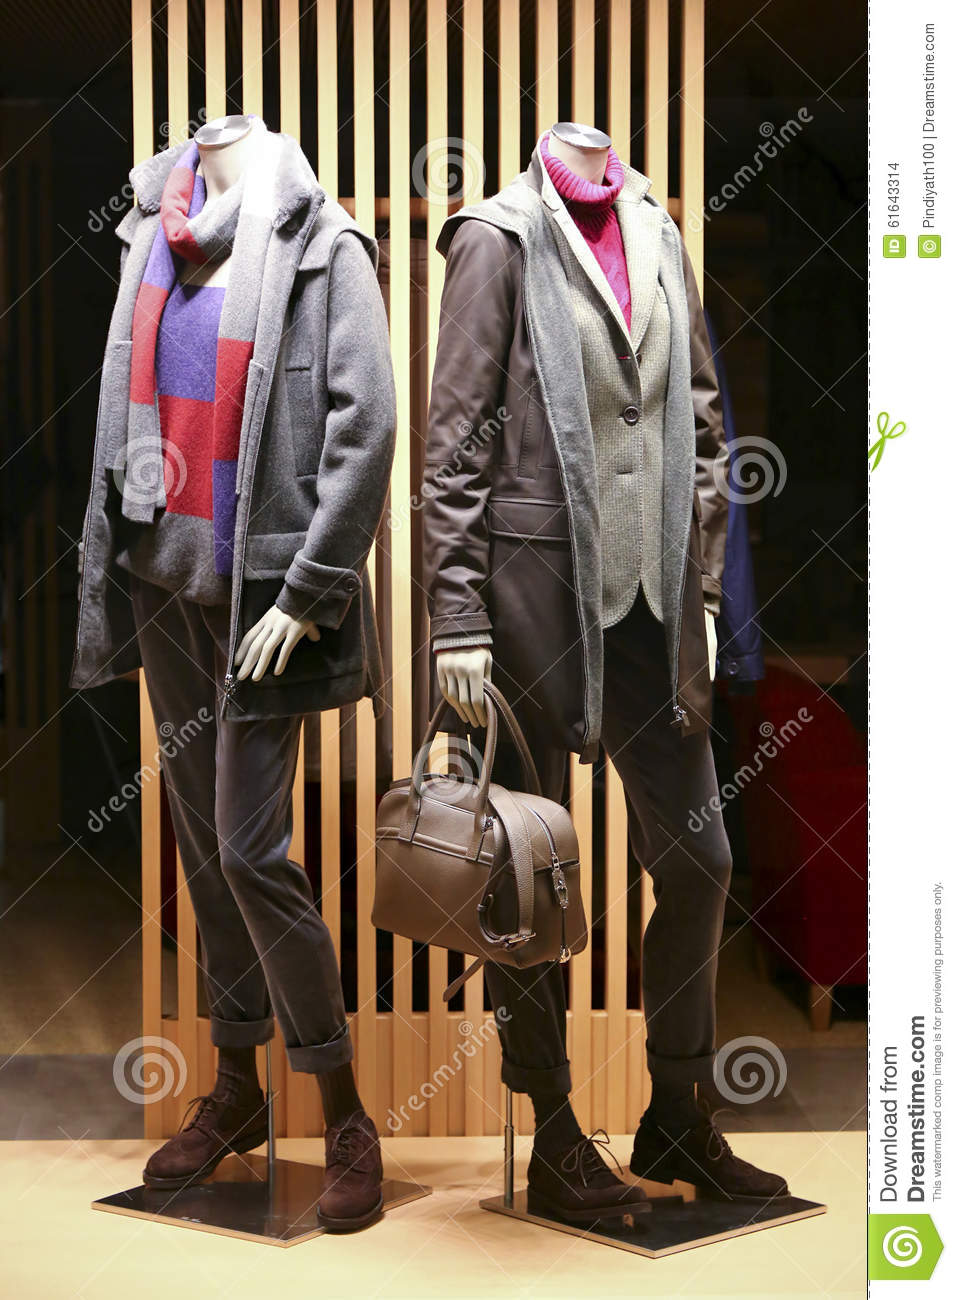 Winter Clothes And Accessories For Men And Women Stock Photo